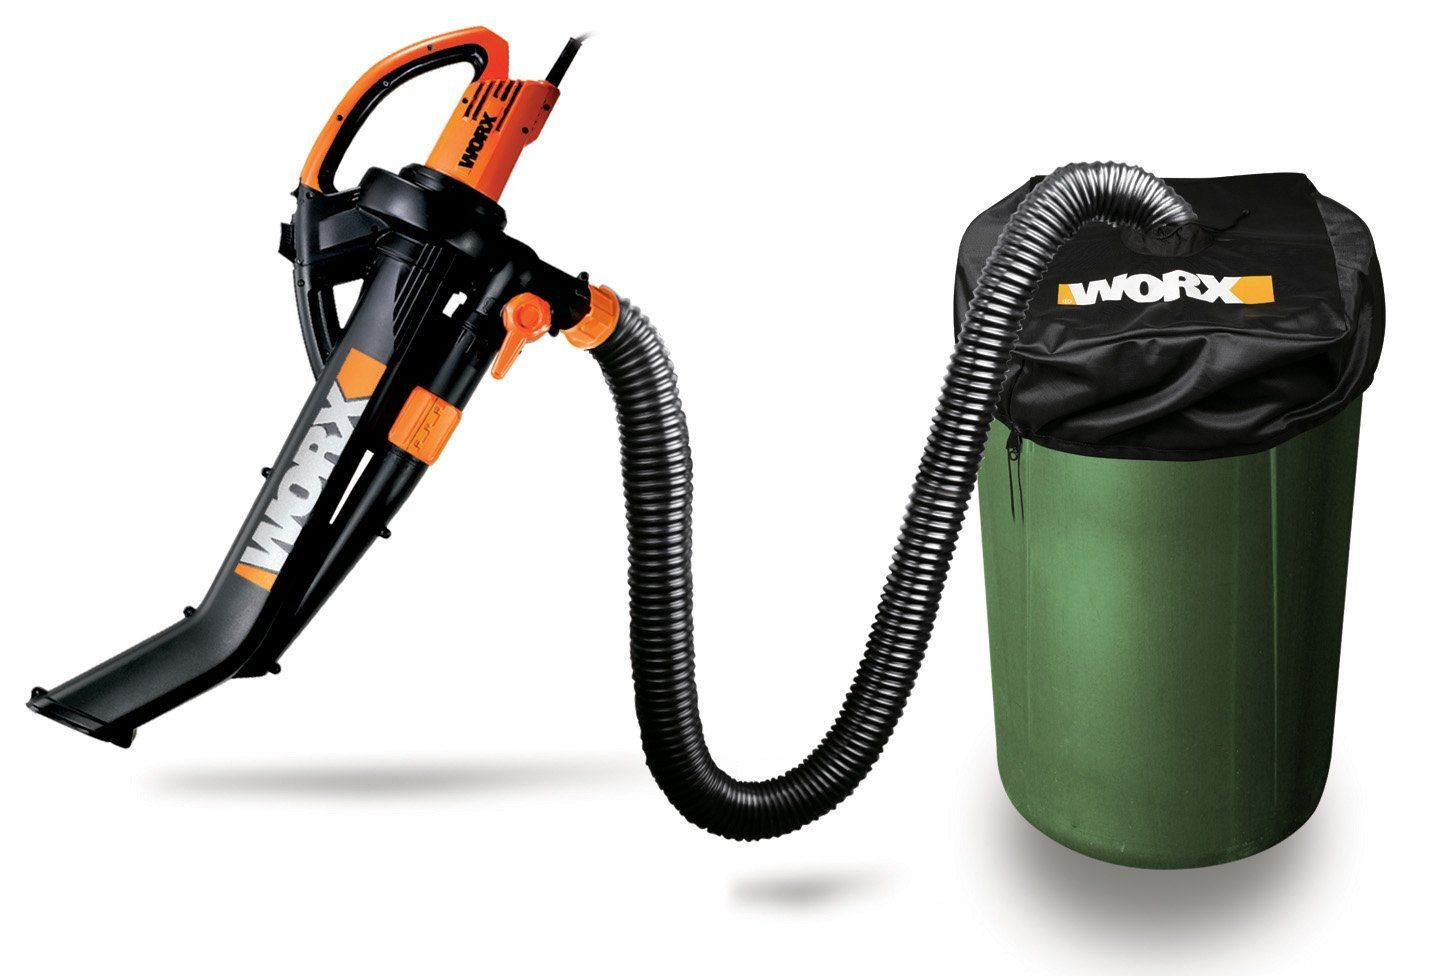 Backpack Leaf Blower worxwg54520voltmax meets all